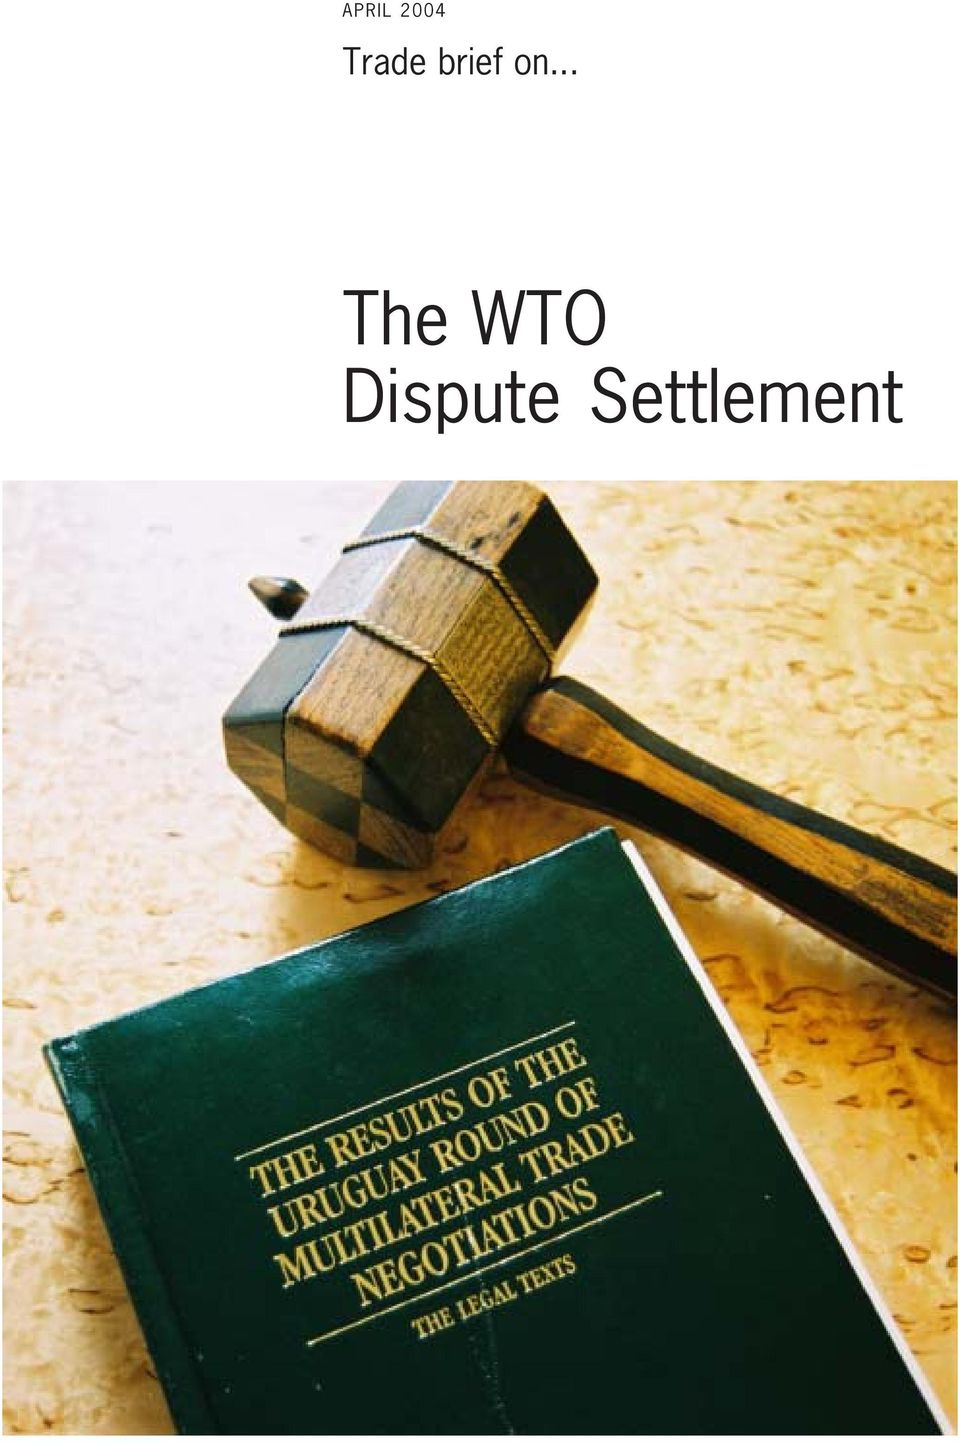 on... The WTO